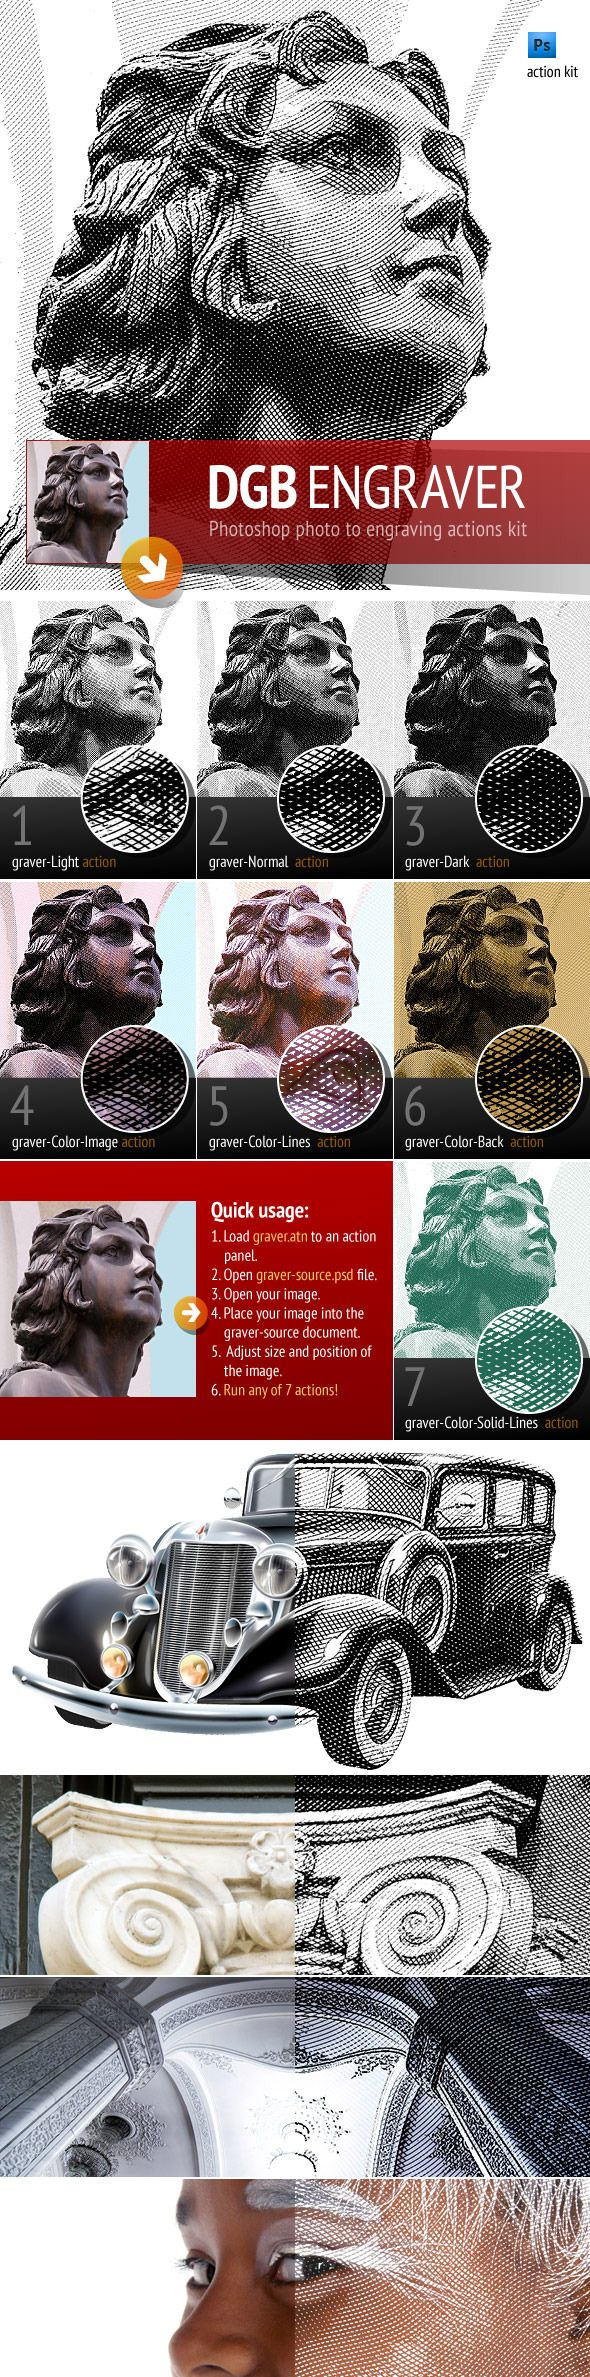 Engrave Photoshop Actions Kit - Utilities Actions